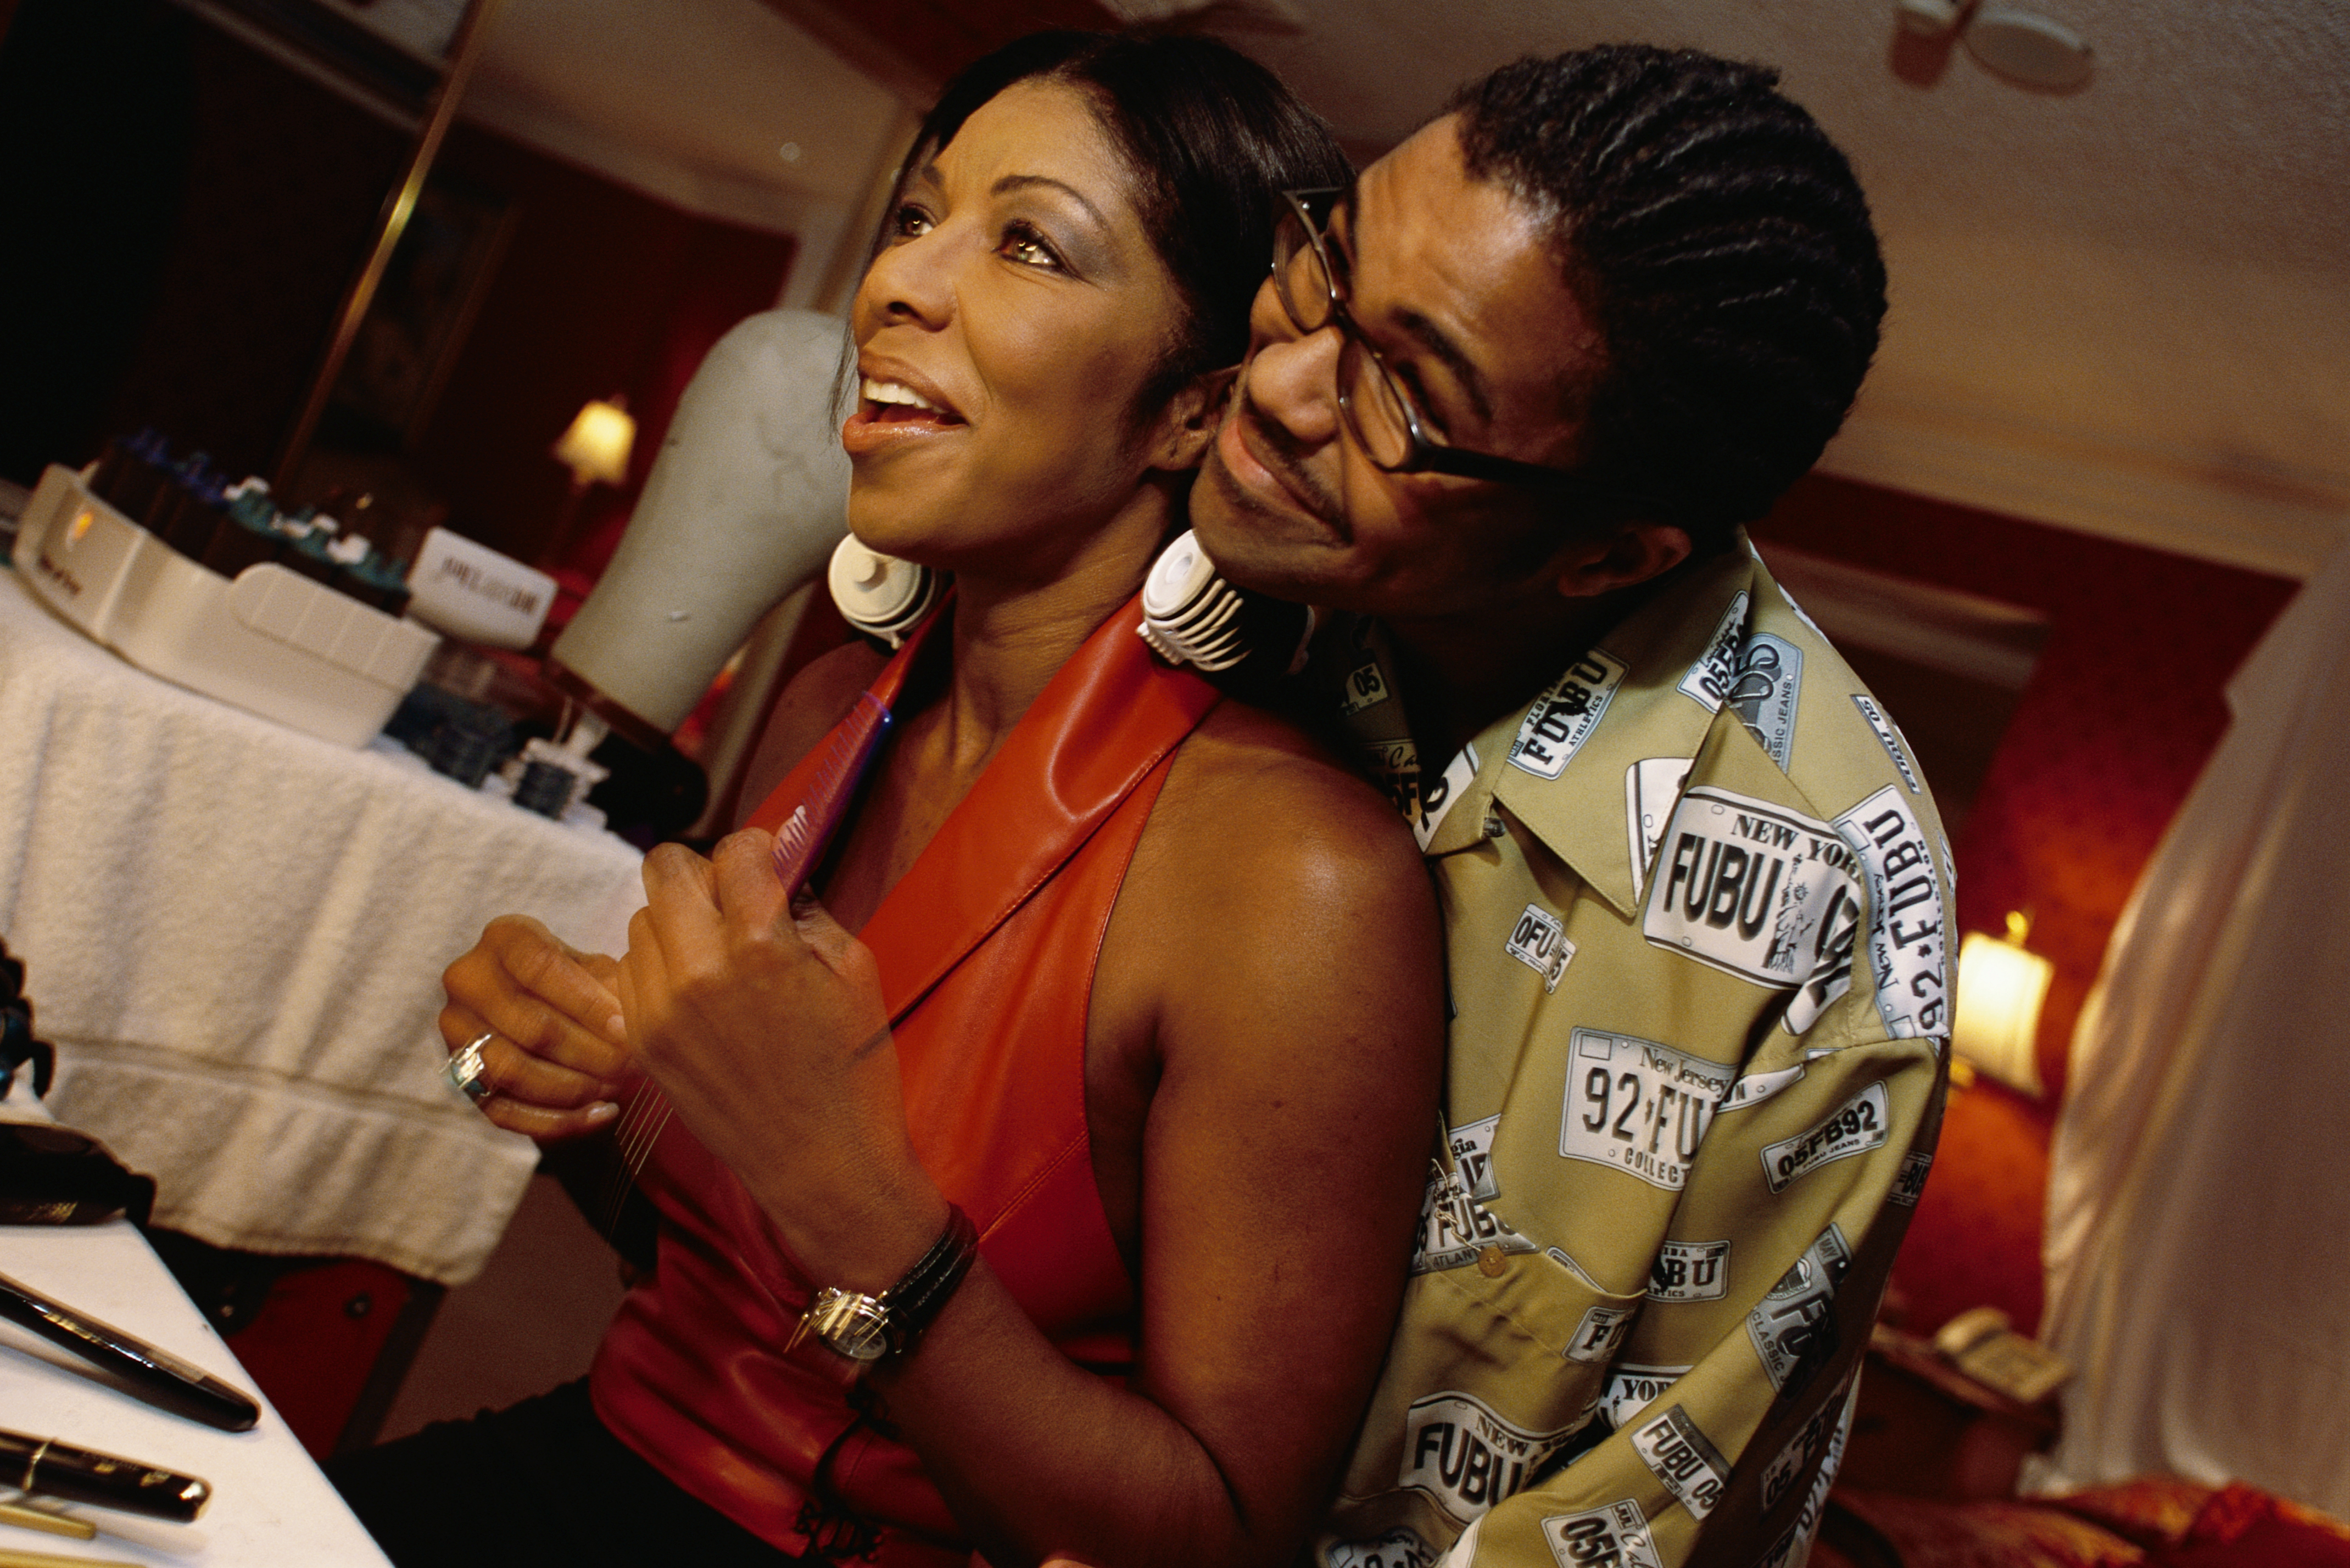 Singer Natalie Cole with Son